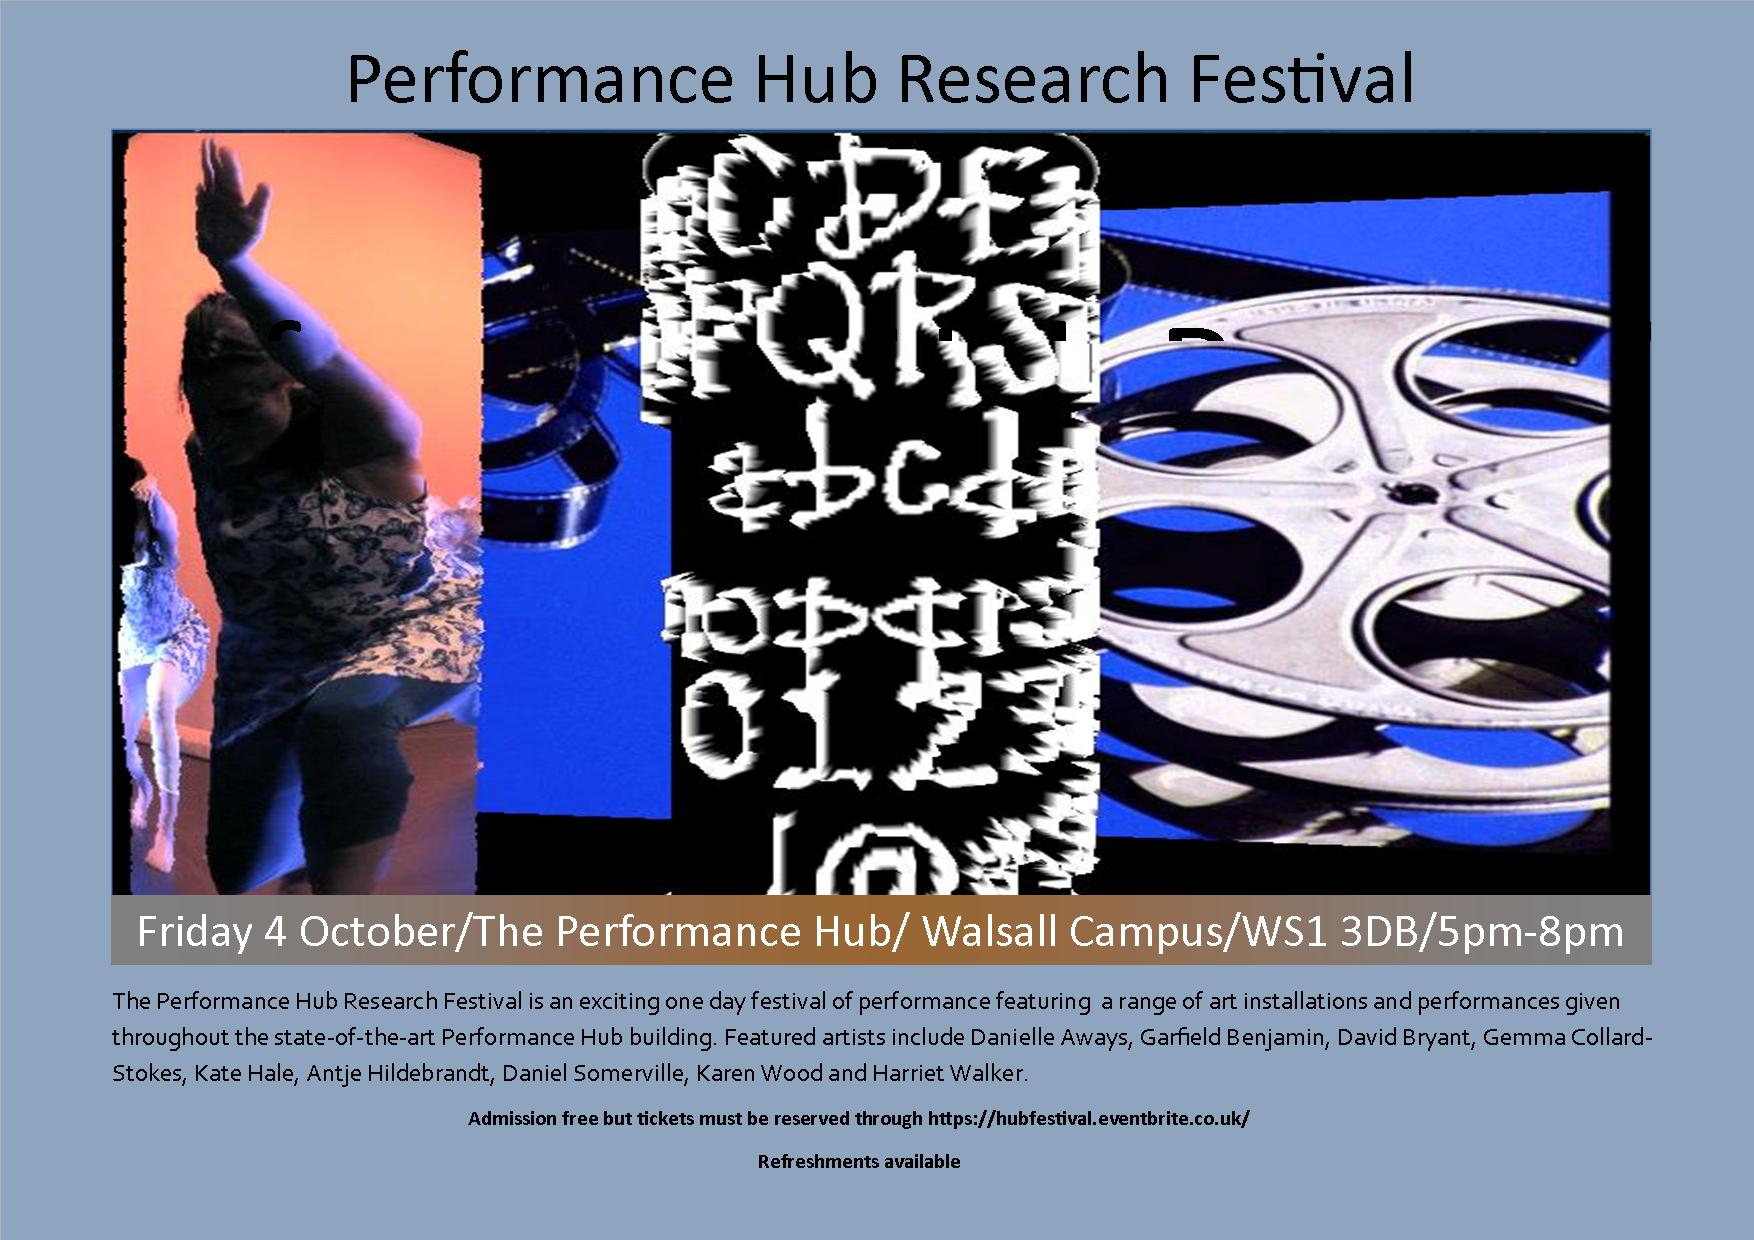 LSE Festival research competition 2019